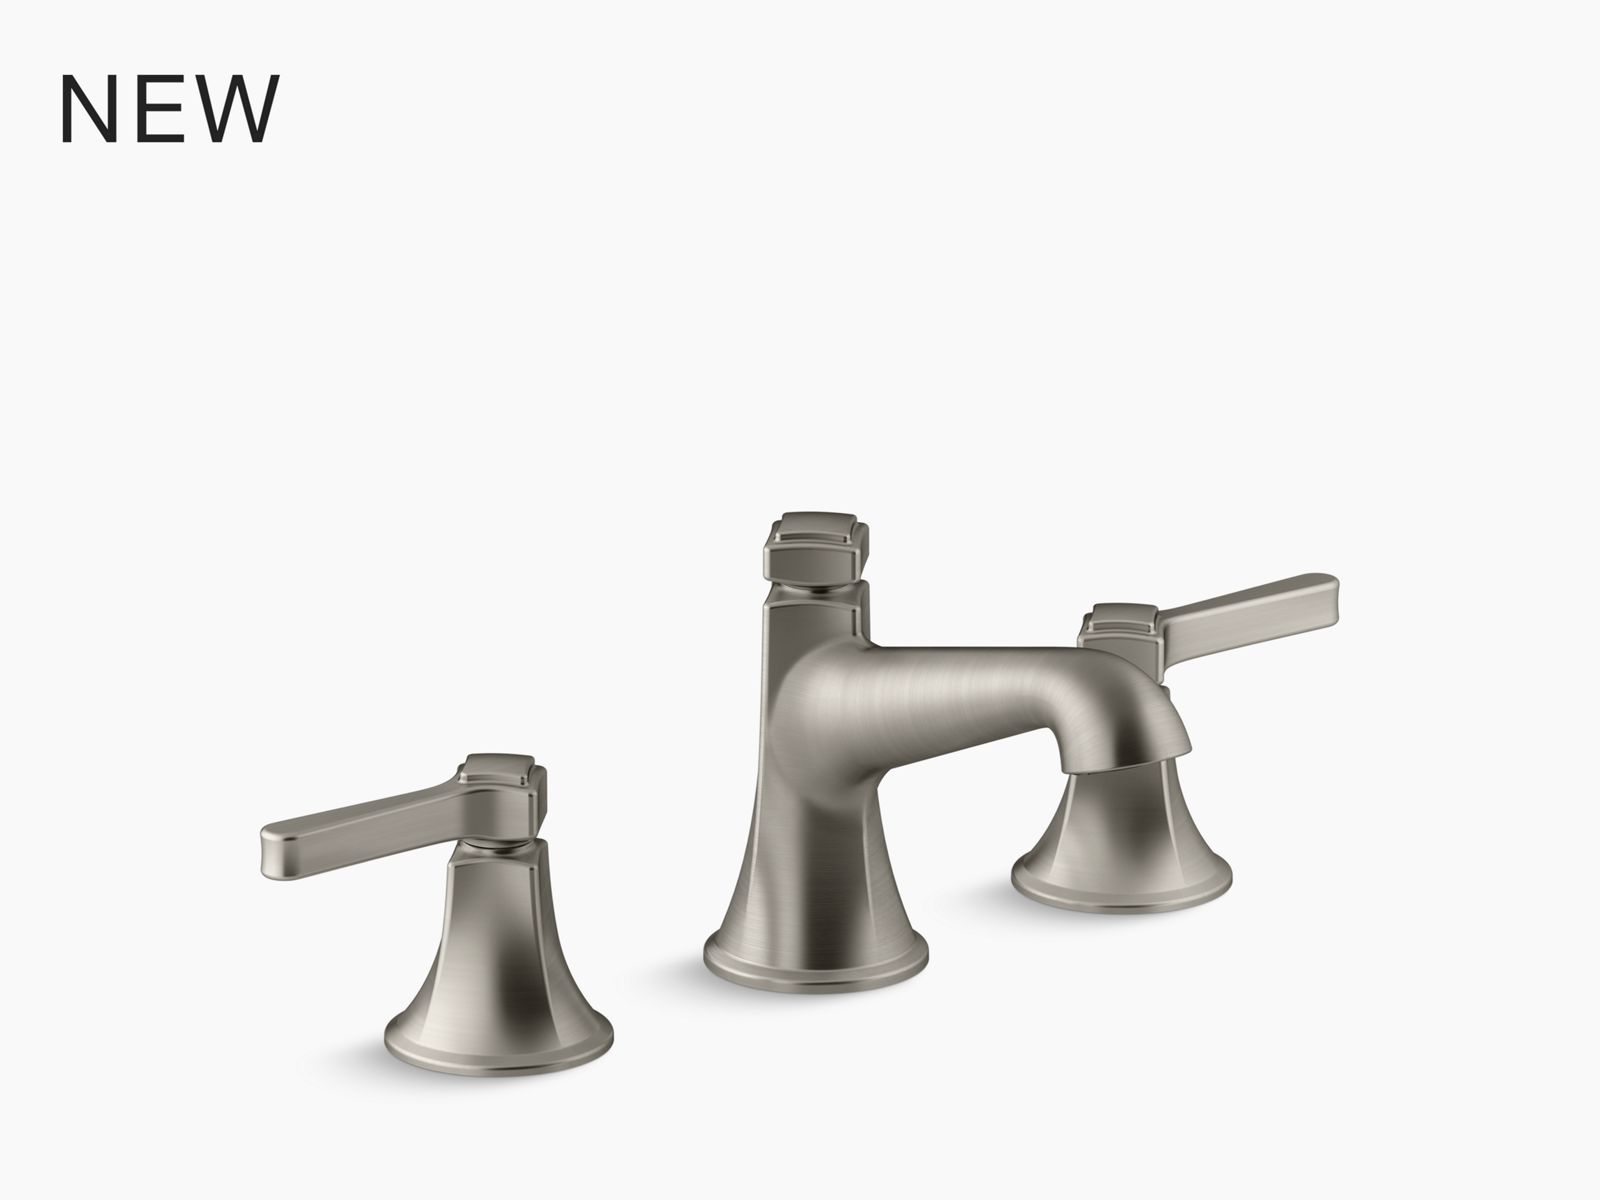 bellera single hole or three hole kitchen sink faucet with pull down 16 3 4 spout and right hand lever handle docknetik magnetic docking system